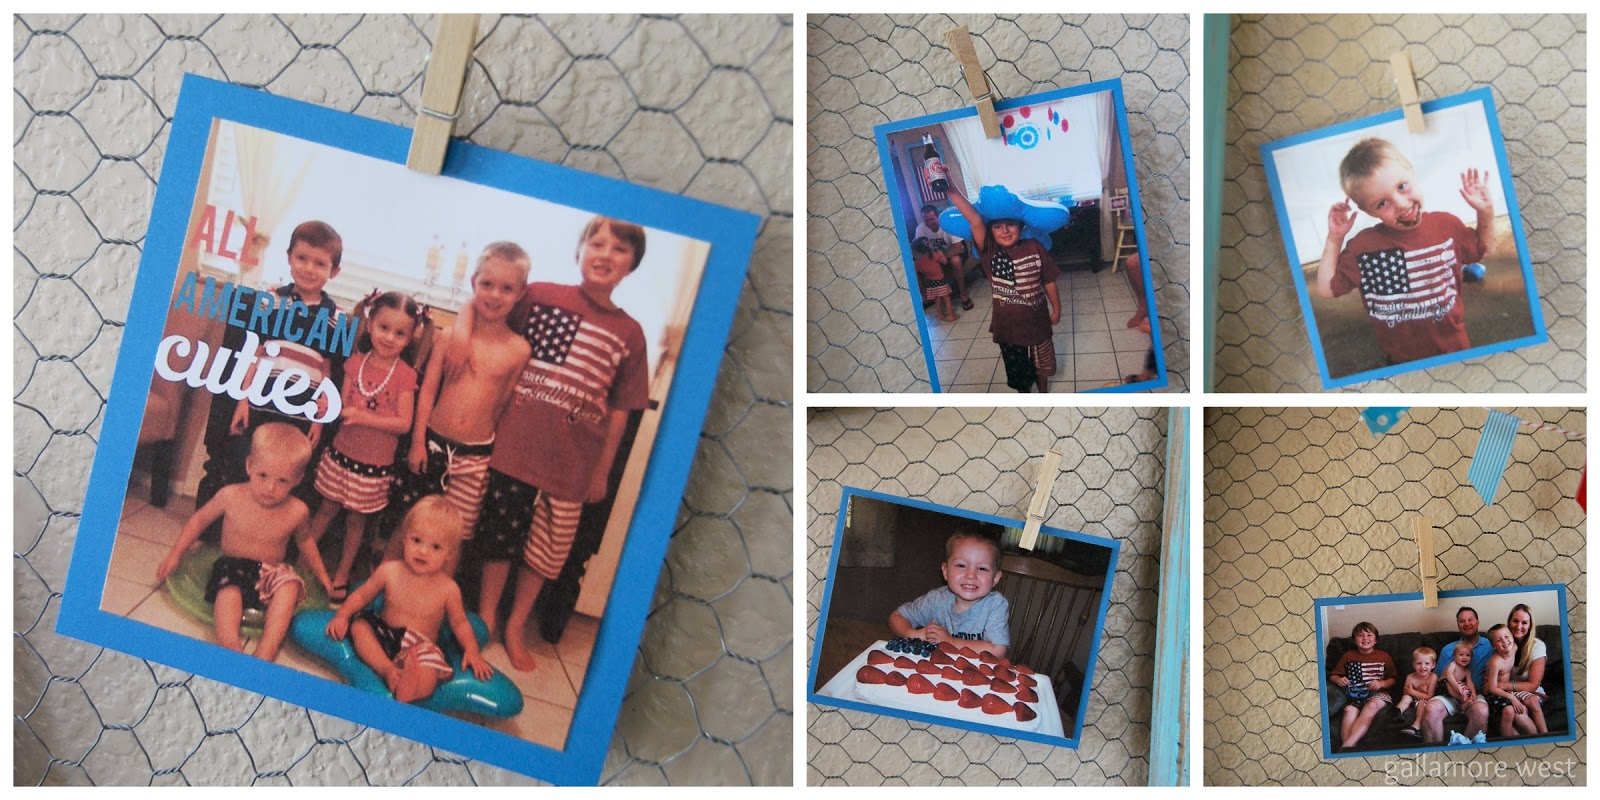 Patriotic Photo Display at www.gallamorewest.com